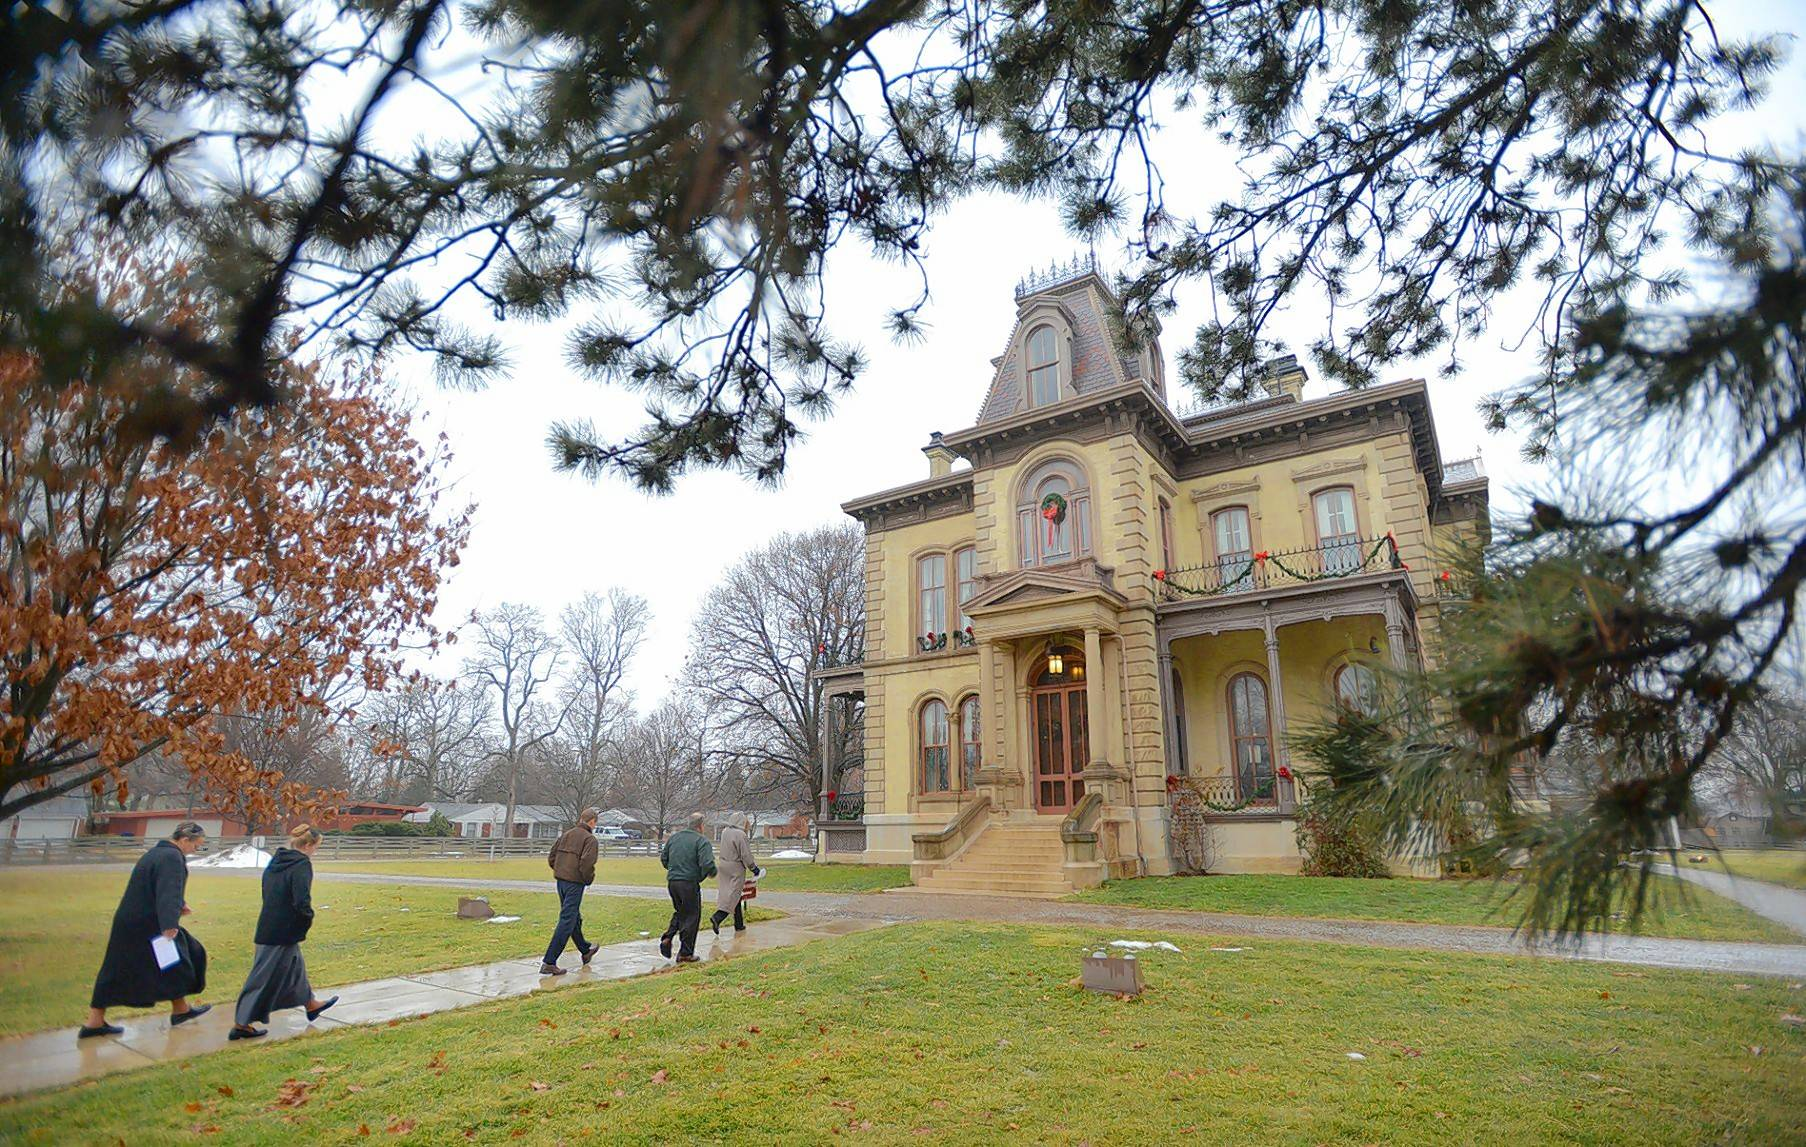 The David Davis mansion in Bloomington was the home of an Abraham Lincoln friend credited with helping to engineer Lincoln's nomination for president.